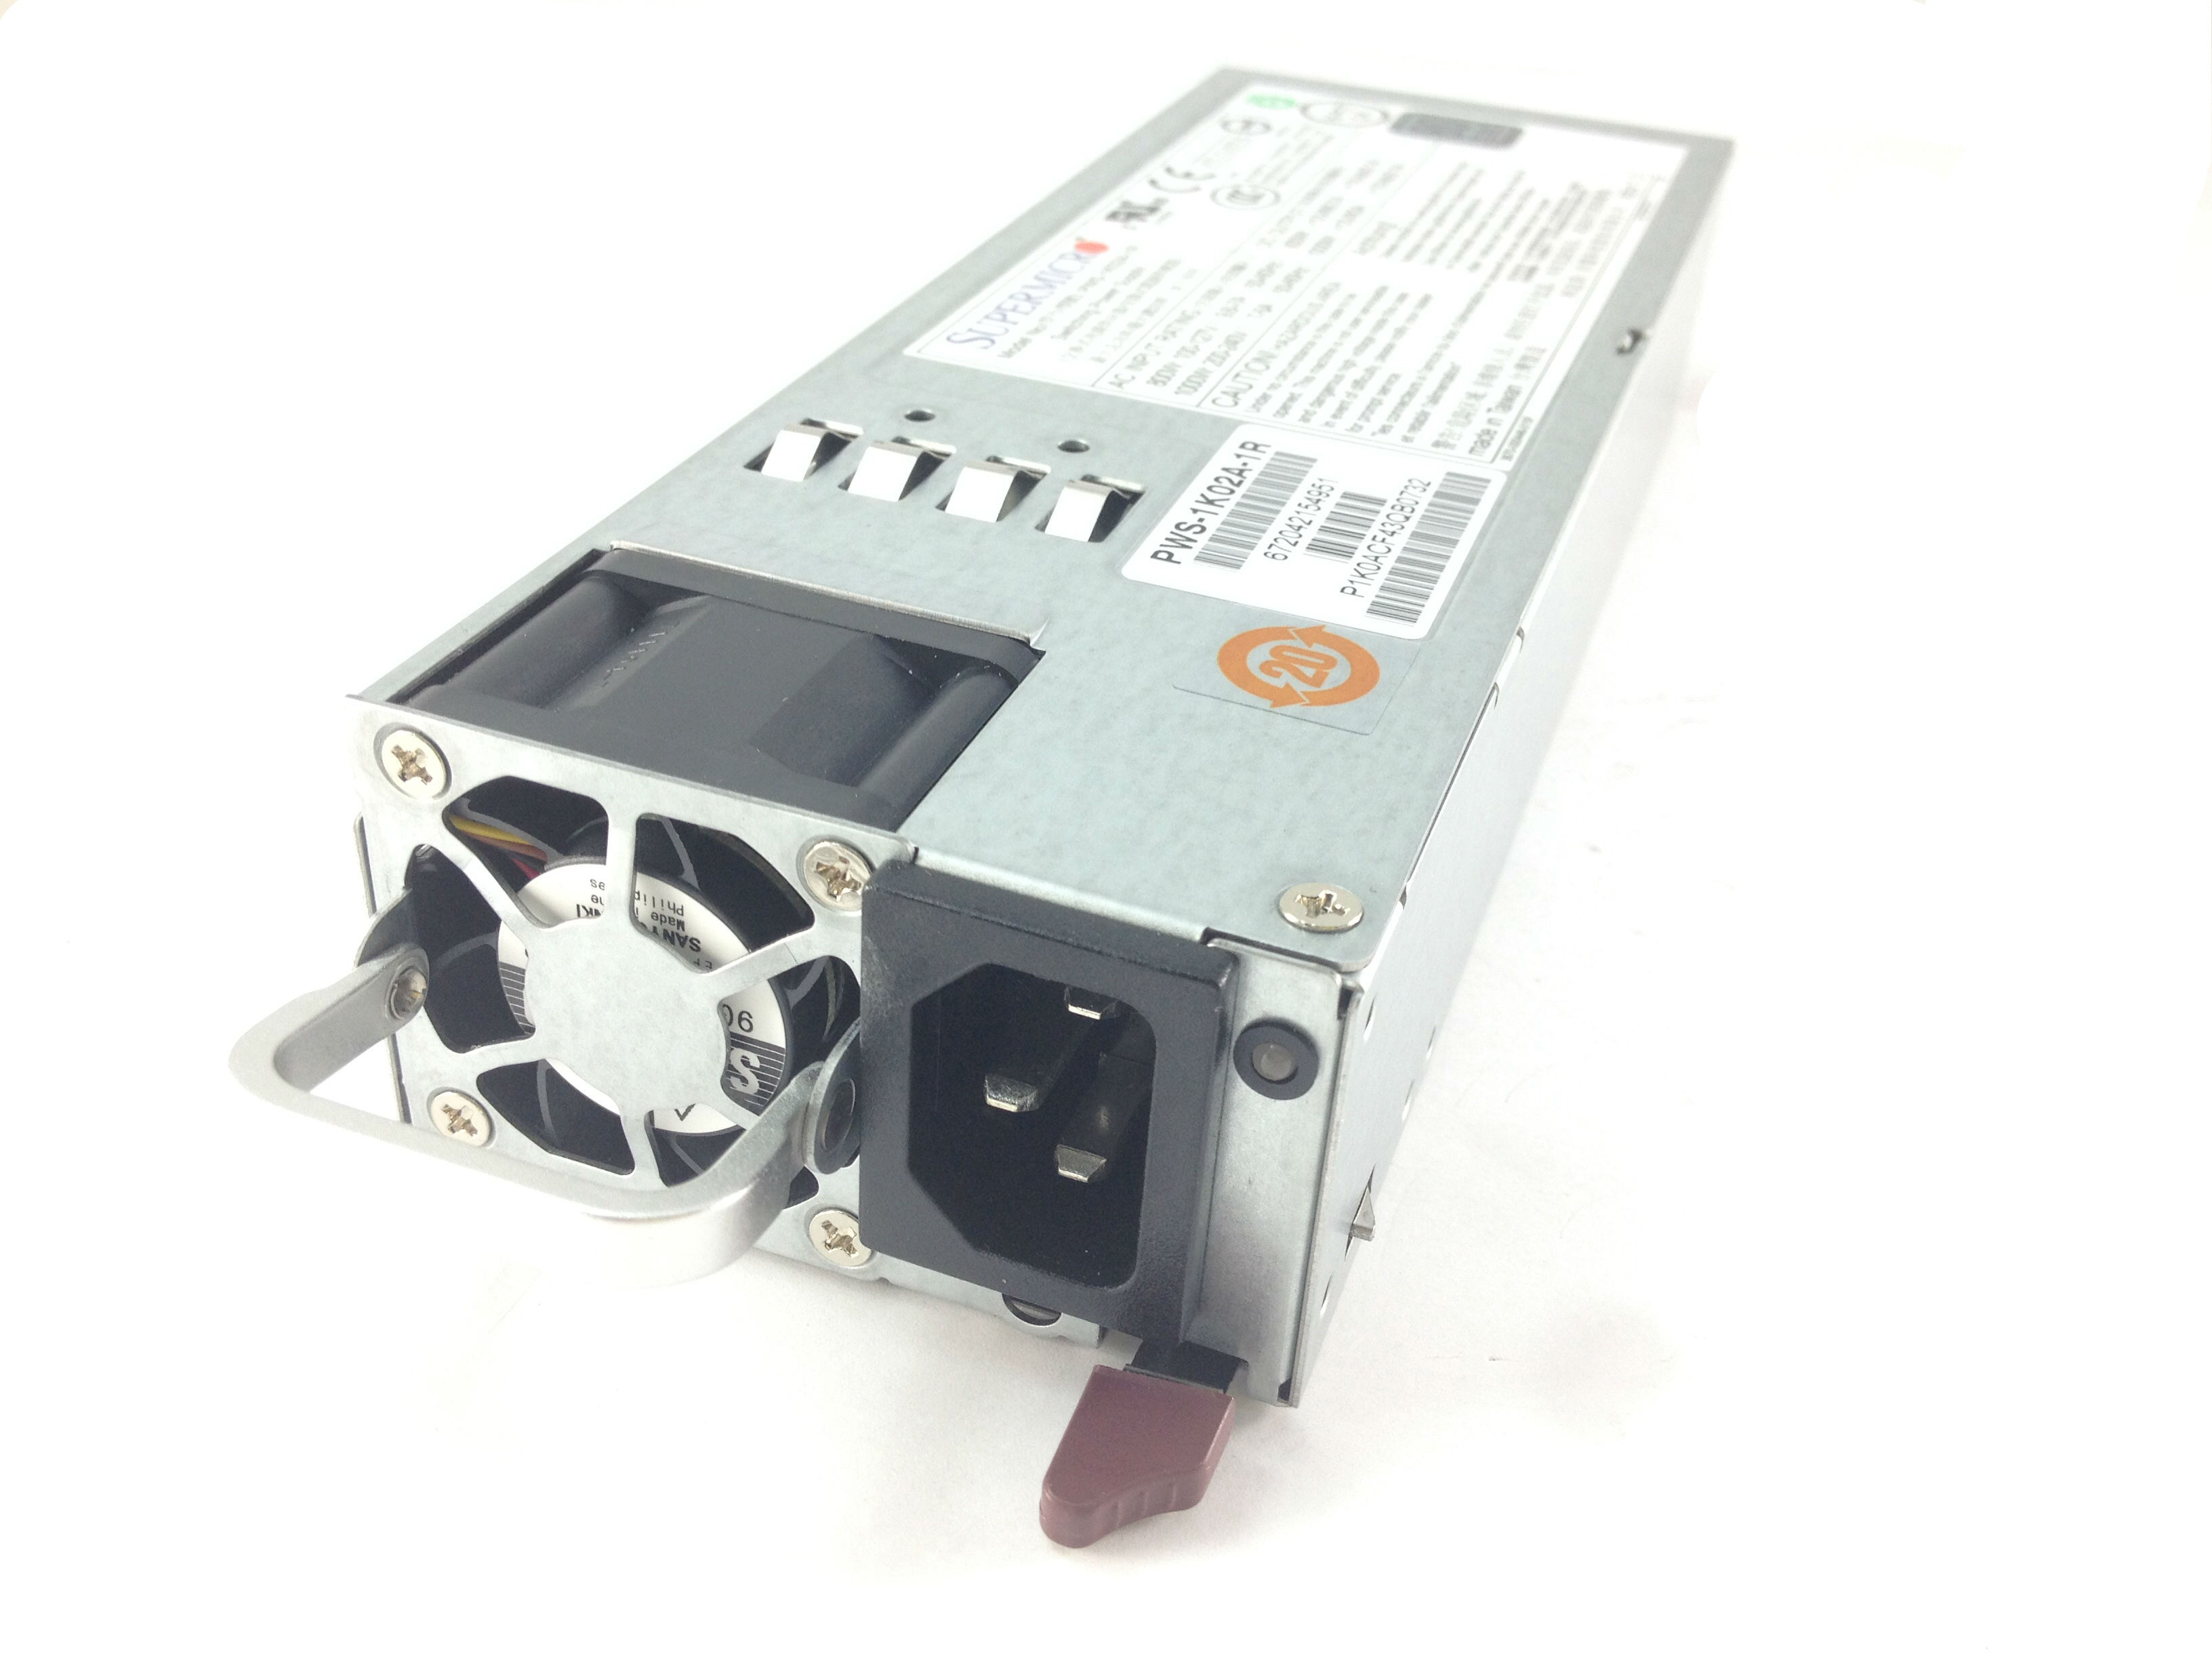 SUPERMICRO 1U 1000W REDUNDANT POWER SUPPLY (PWS-1K02A-1R)